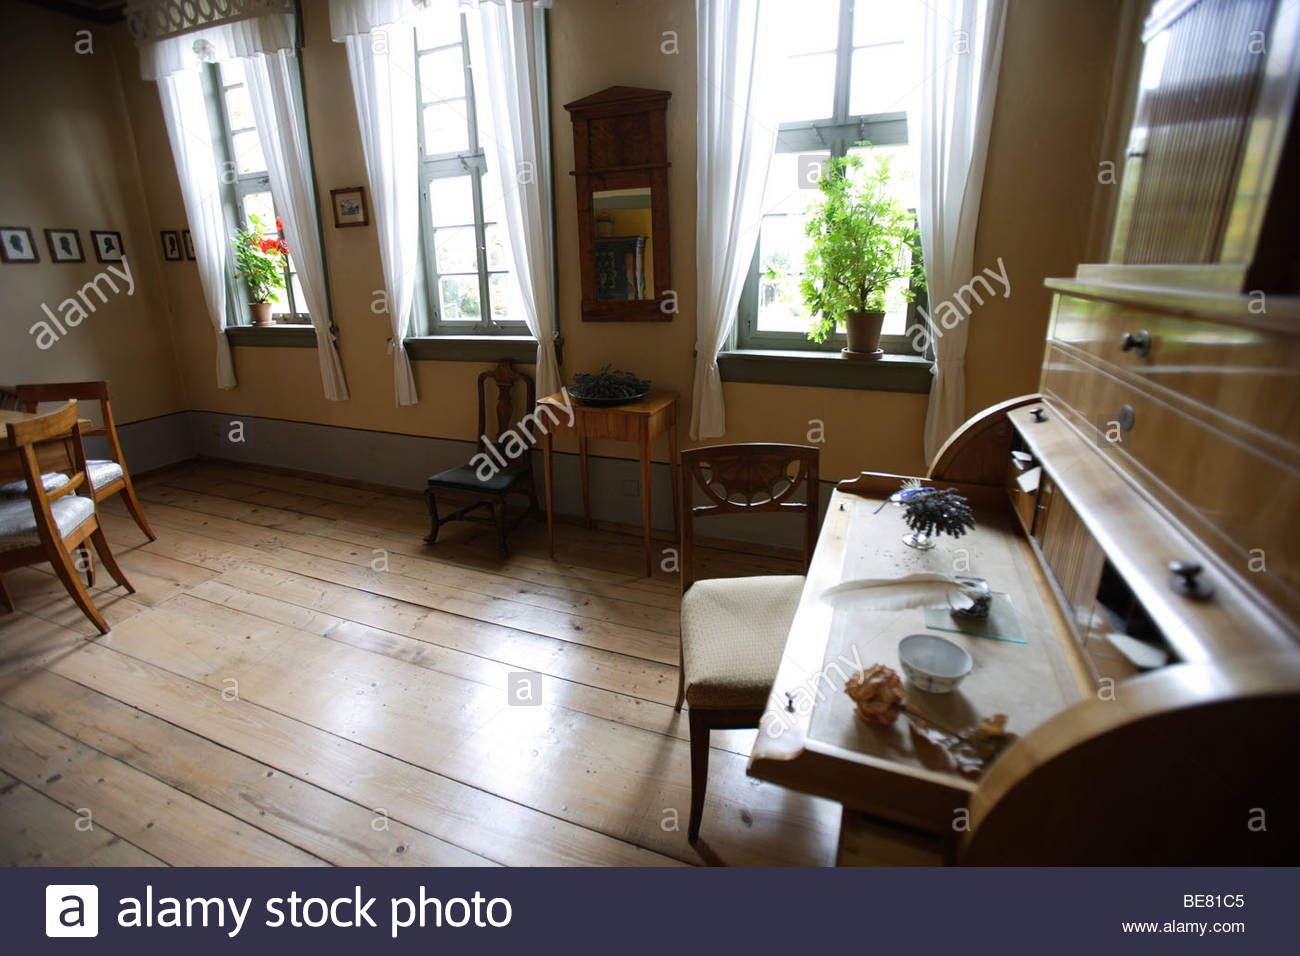 Schillers Stock Photos & Schillers Stock Images - Alamy